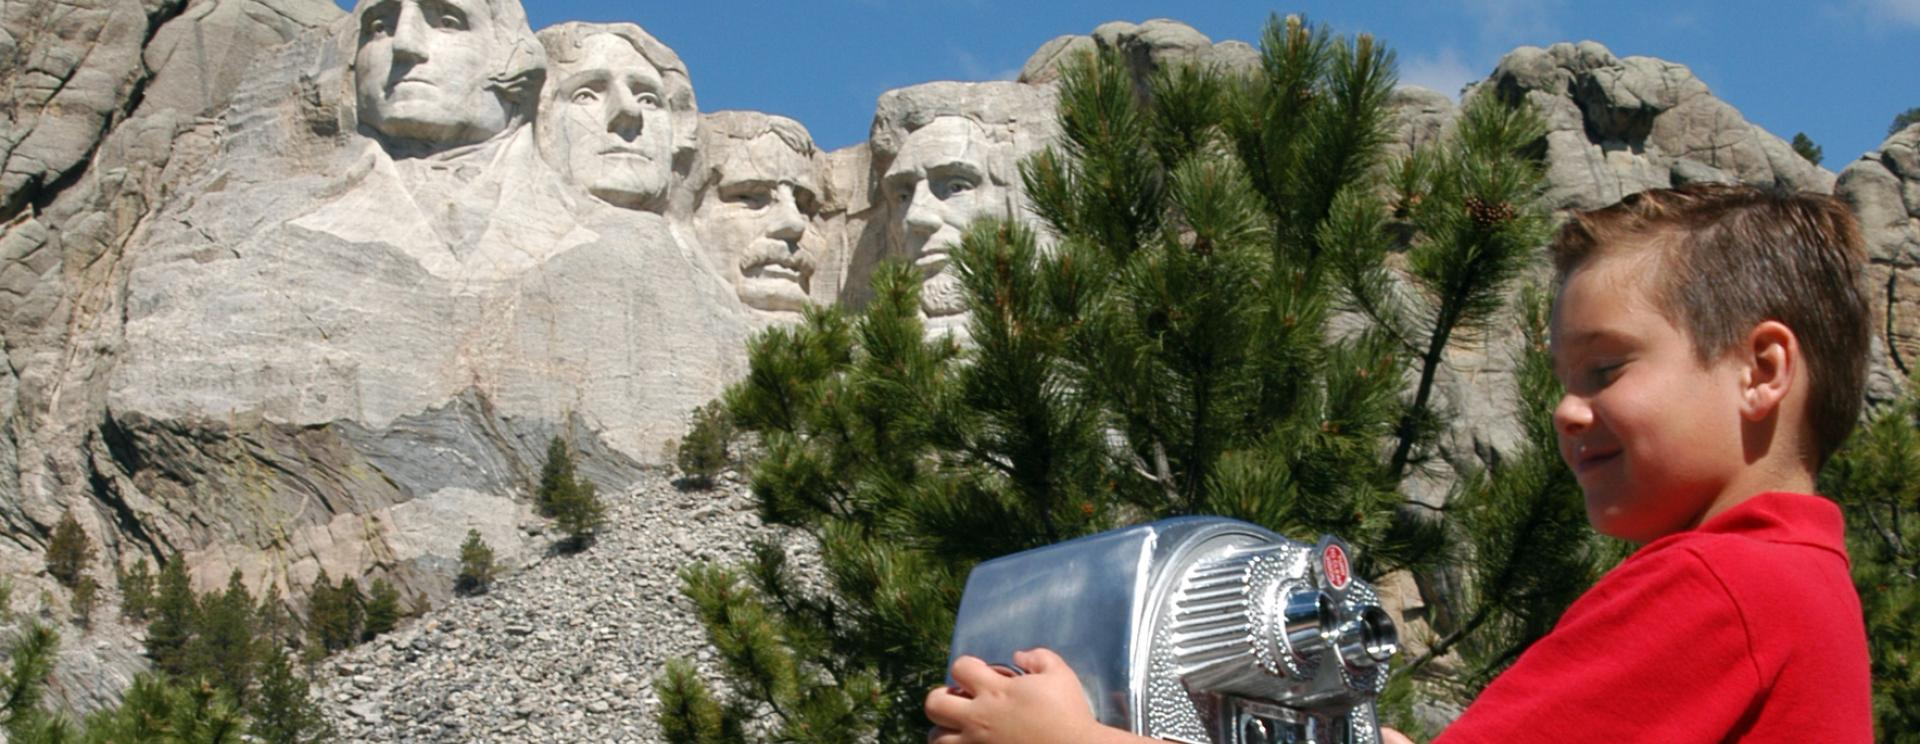 Junior Ranger Program at Mount Rushmore National Memorial